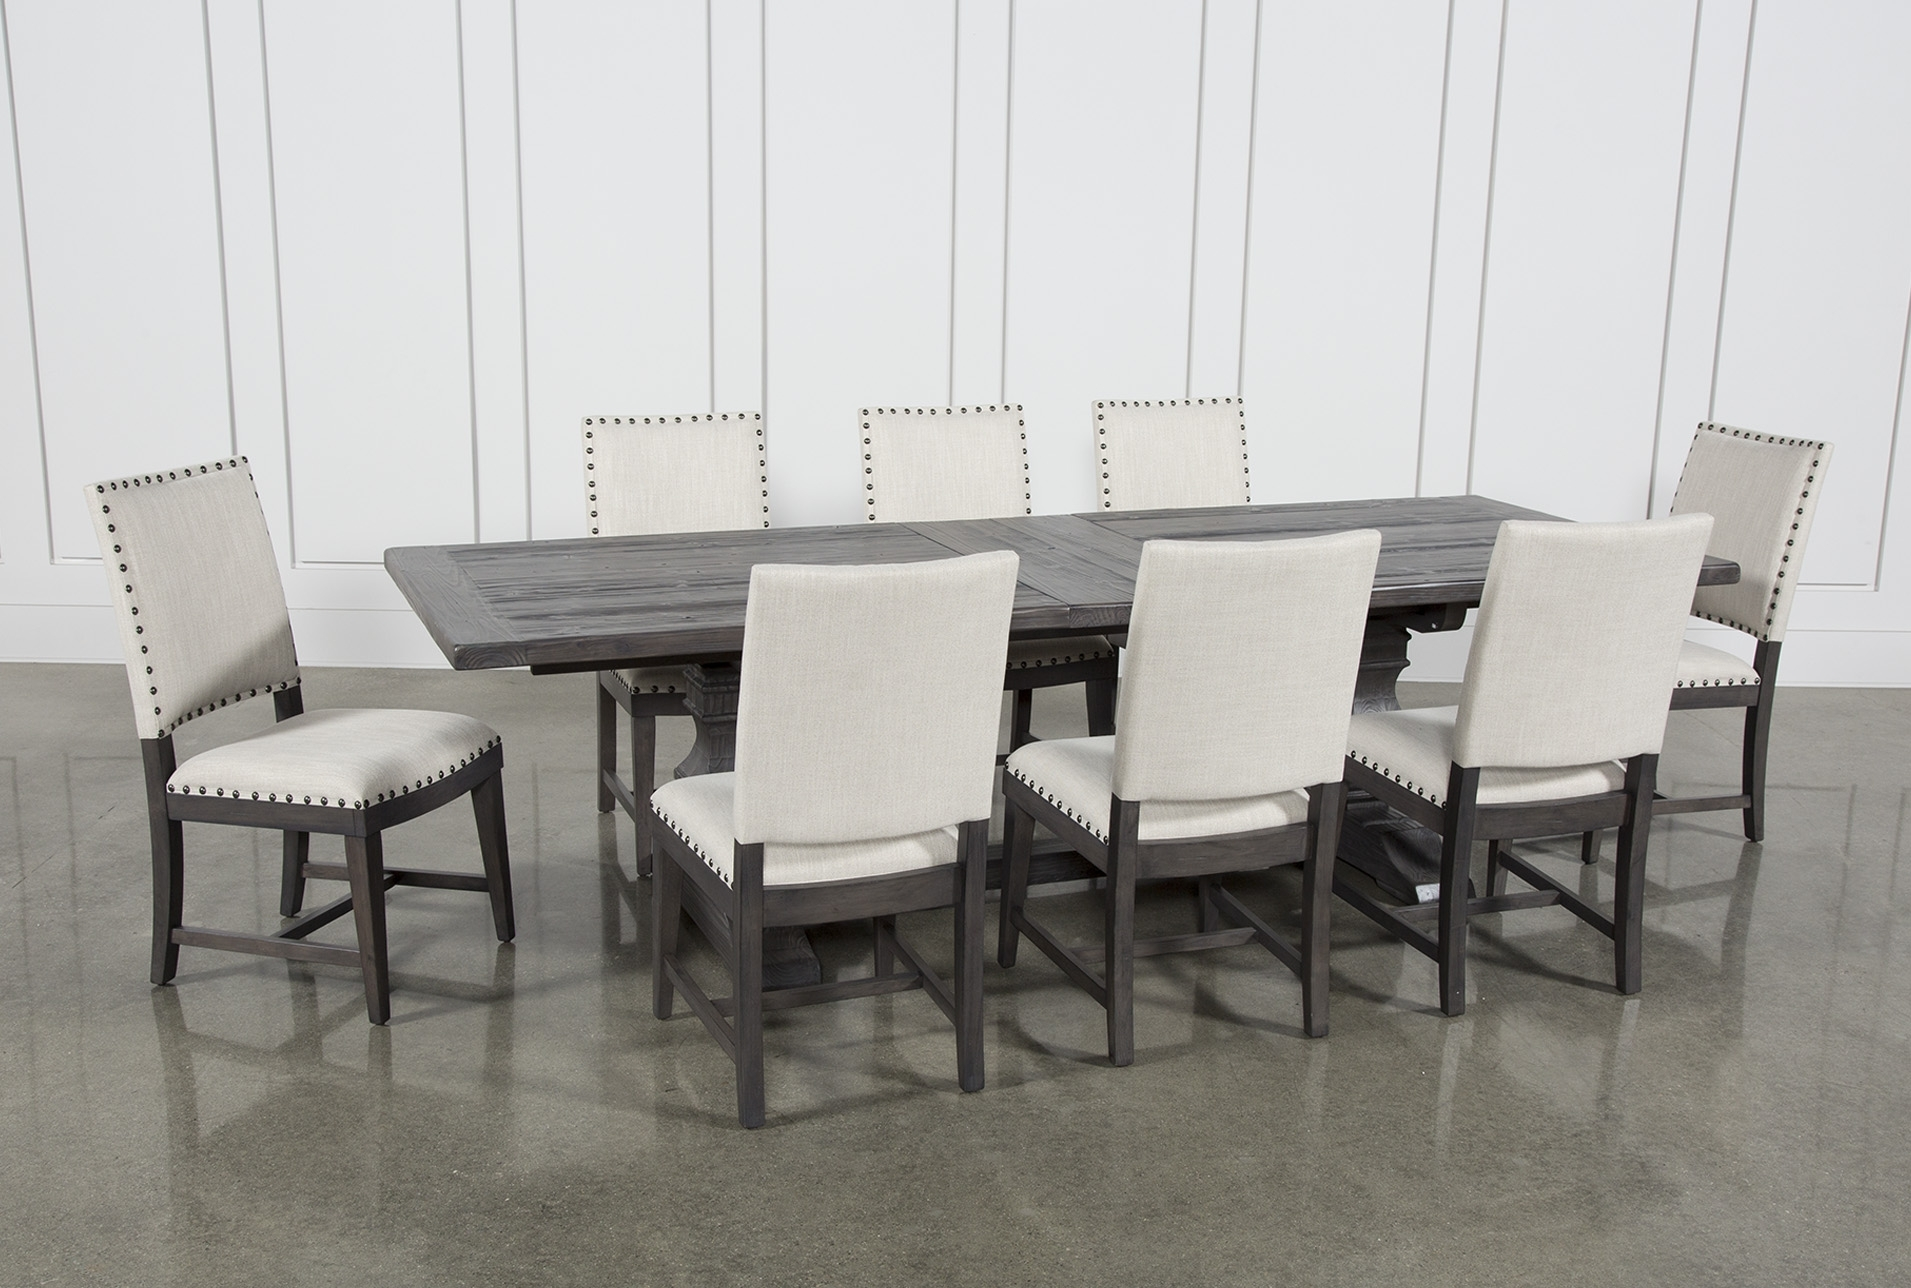 Norwood 9 Piece Rectangular Extension Dining Set With Uph Side Pertaining To Best And Newest Norwood 9 Piece Rectangular Extension Dining Sets With Uph Side Chairs (Image 19 of 20)